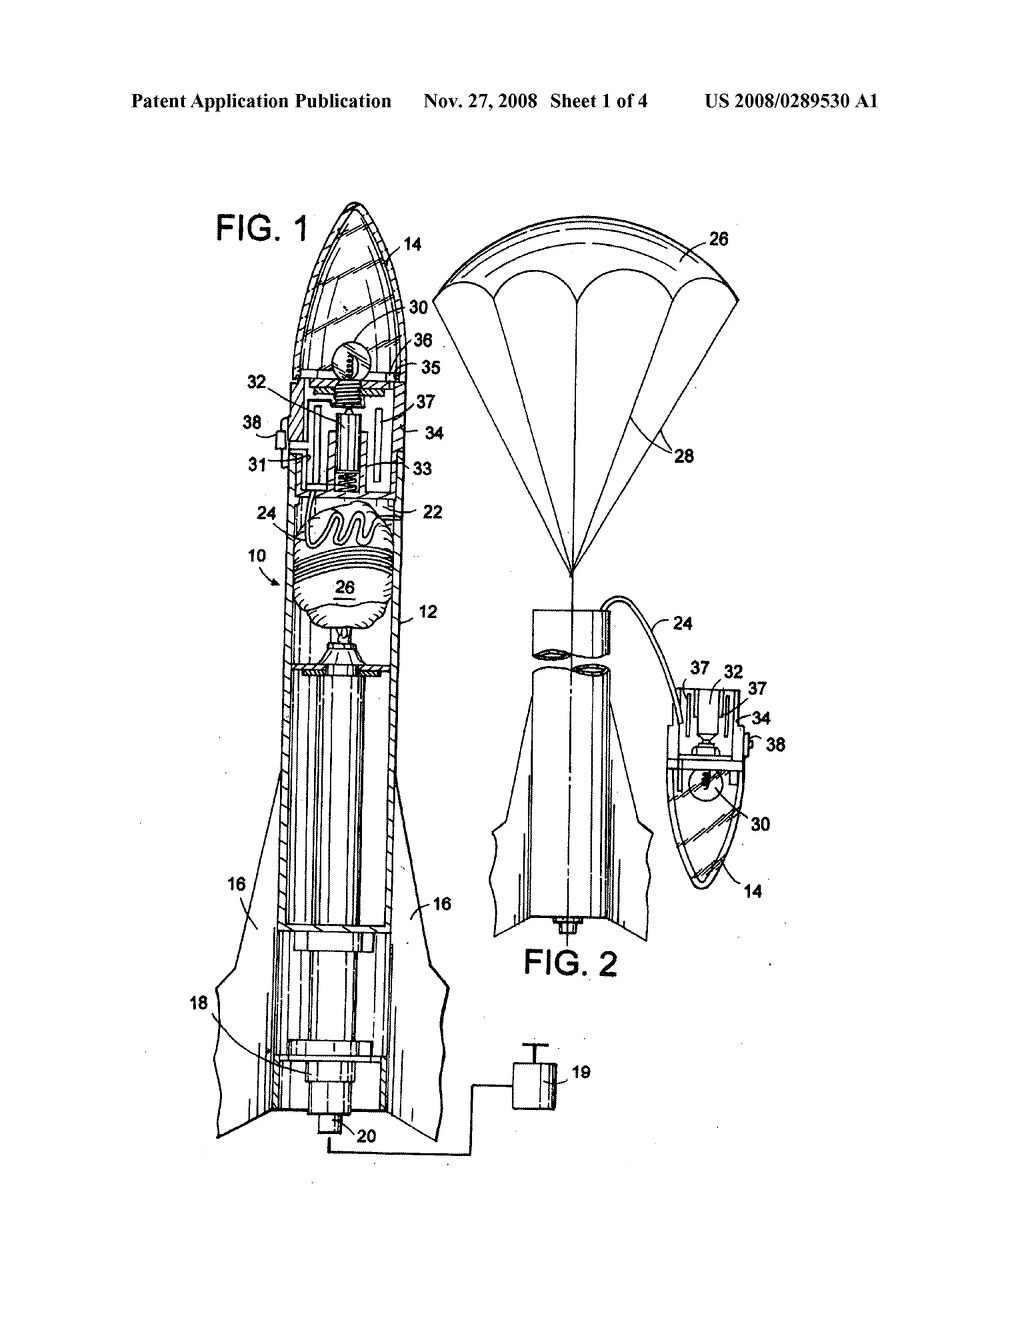 hight resolution of airborne device such as model rocket with light and sound for observing and retrieving diagram schematic and image 02